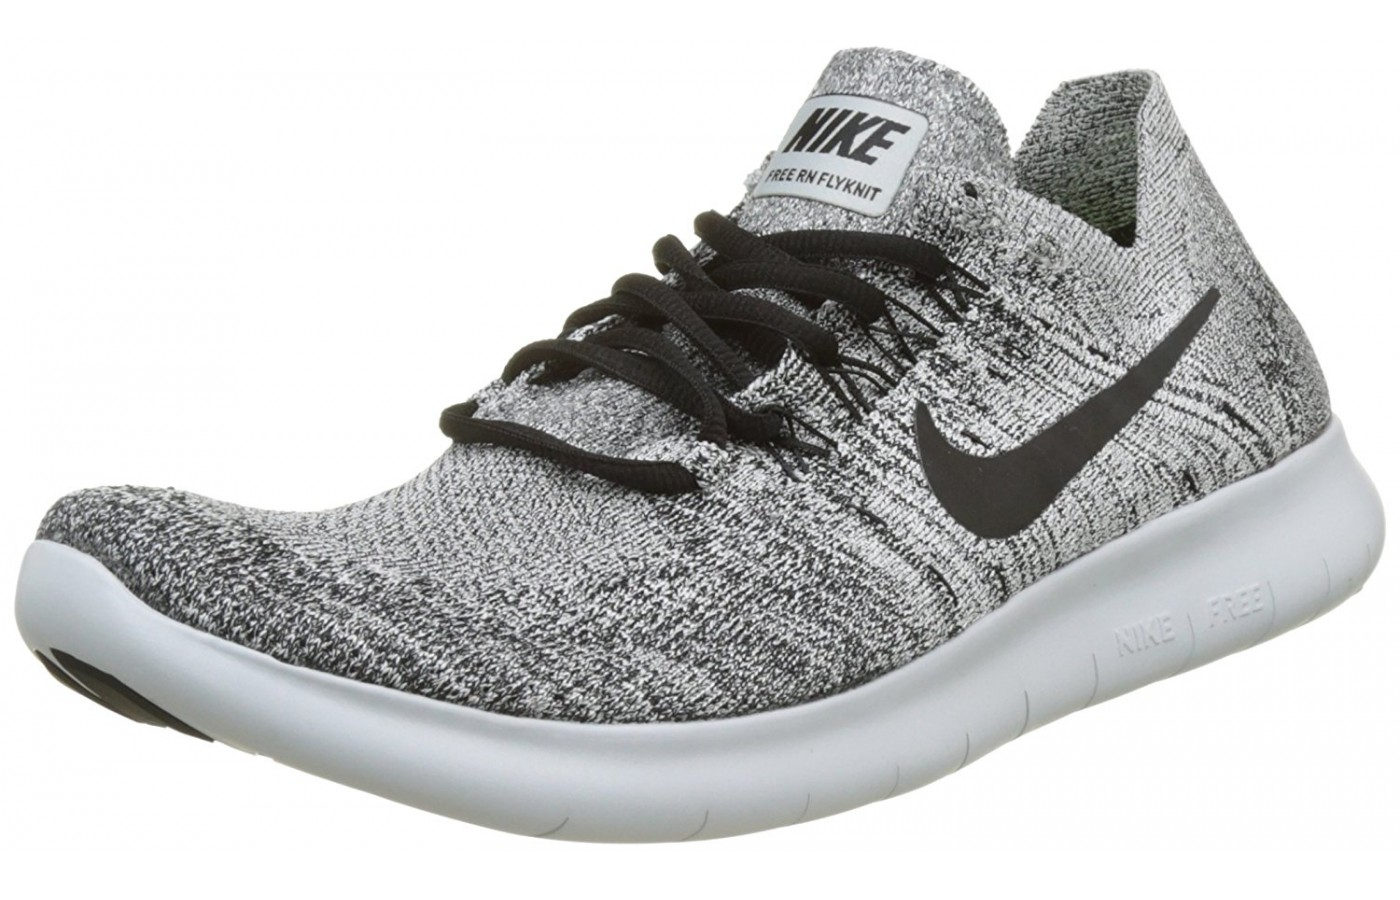 nike free flyknit Buy nike free rn flyknit review silver > up to 52% Discounts